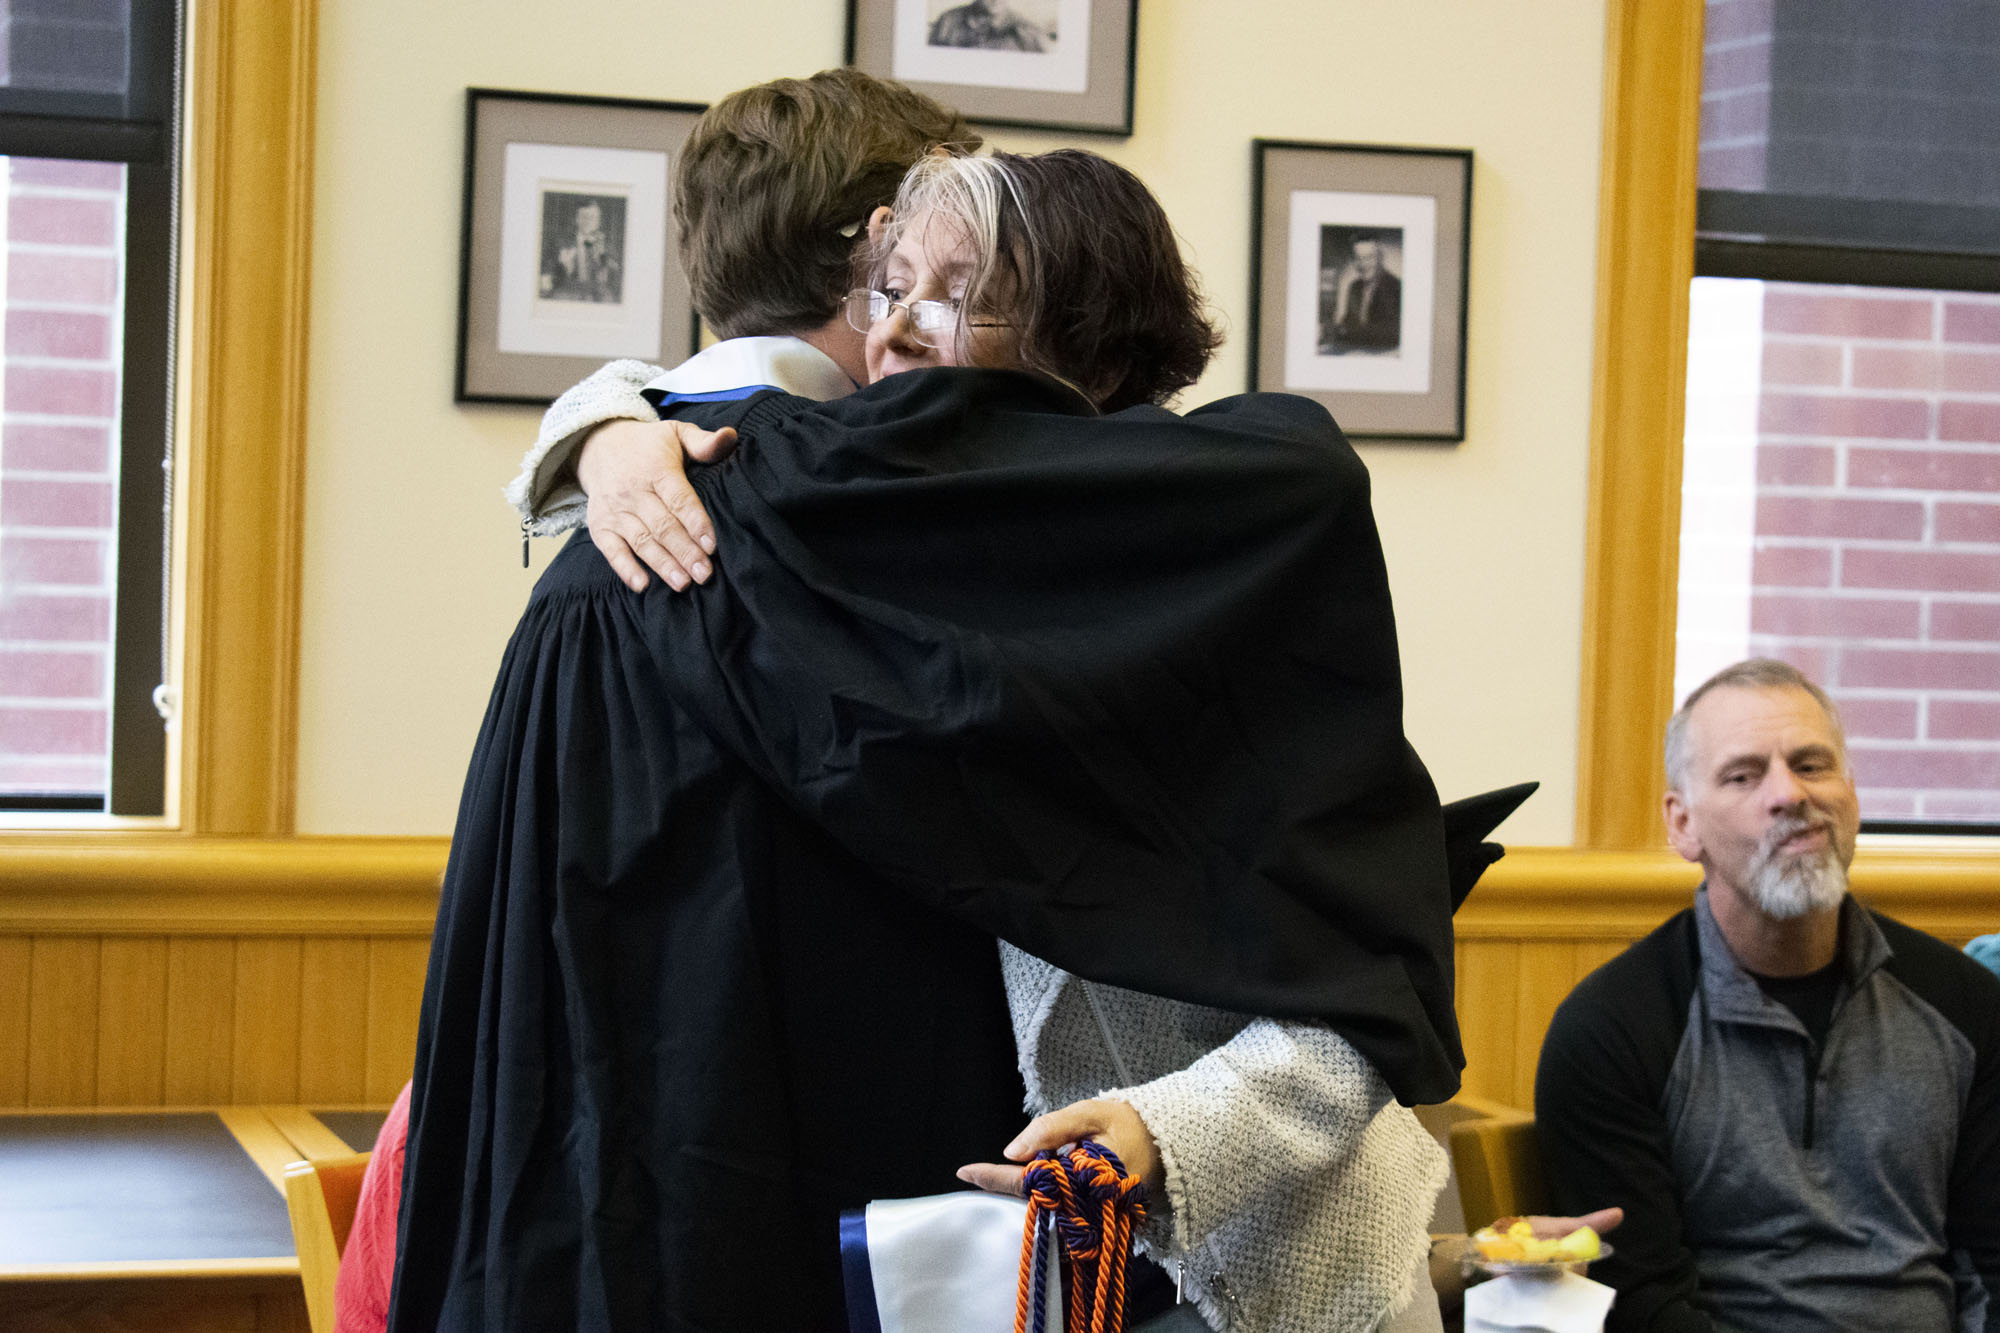 A woman hugs a male student.